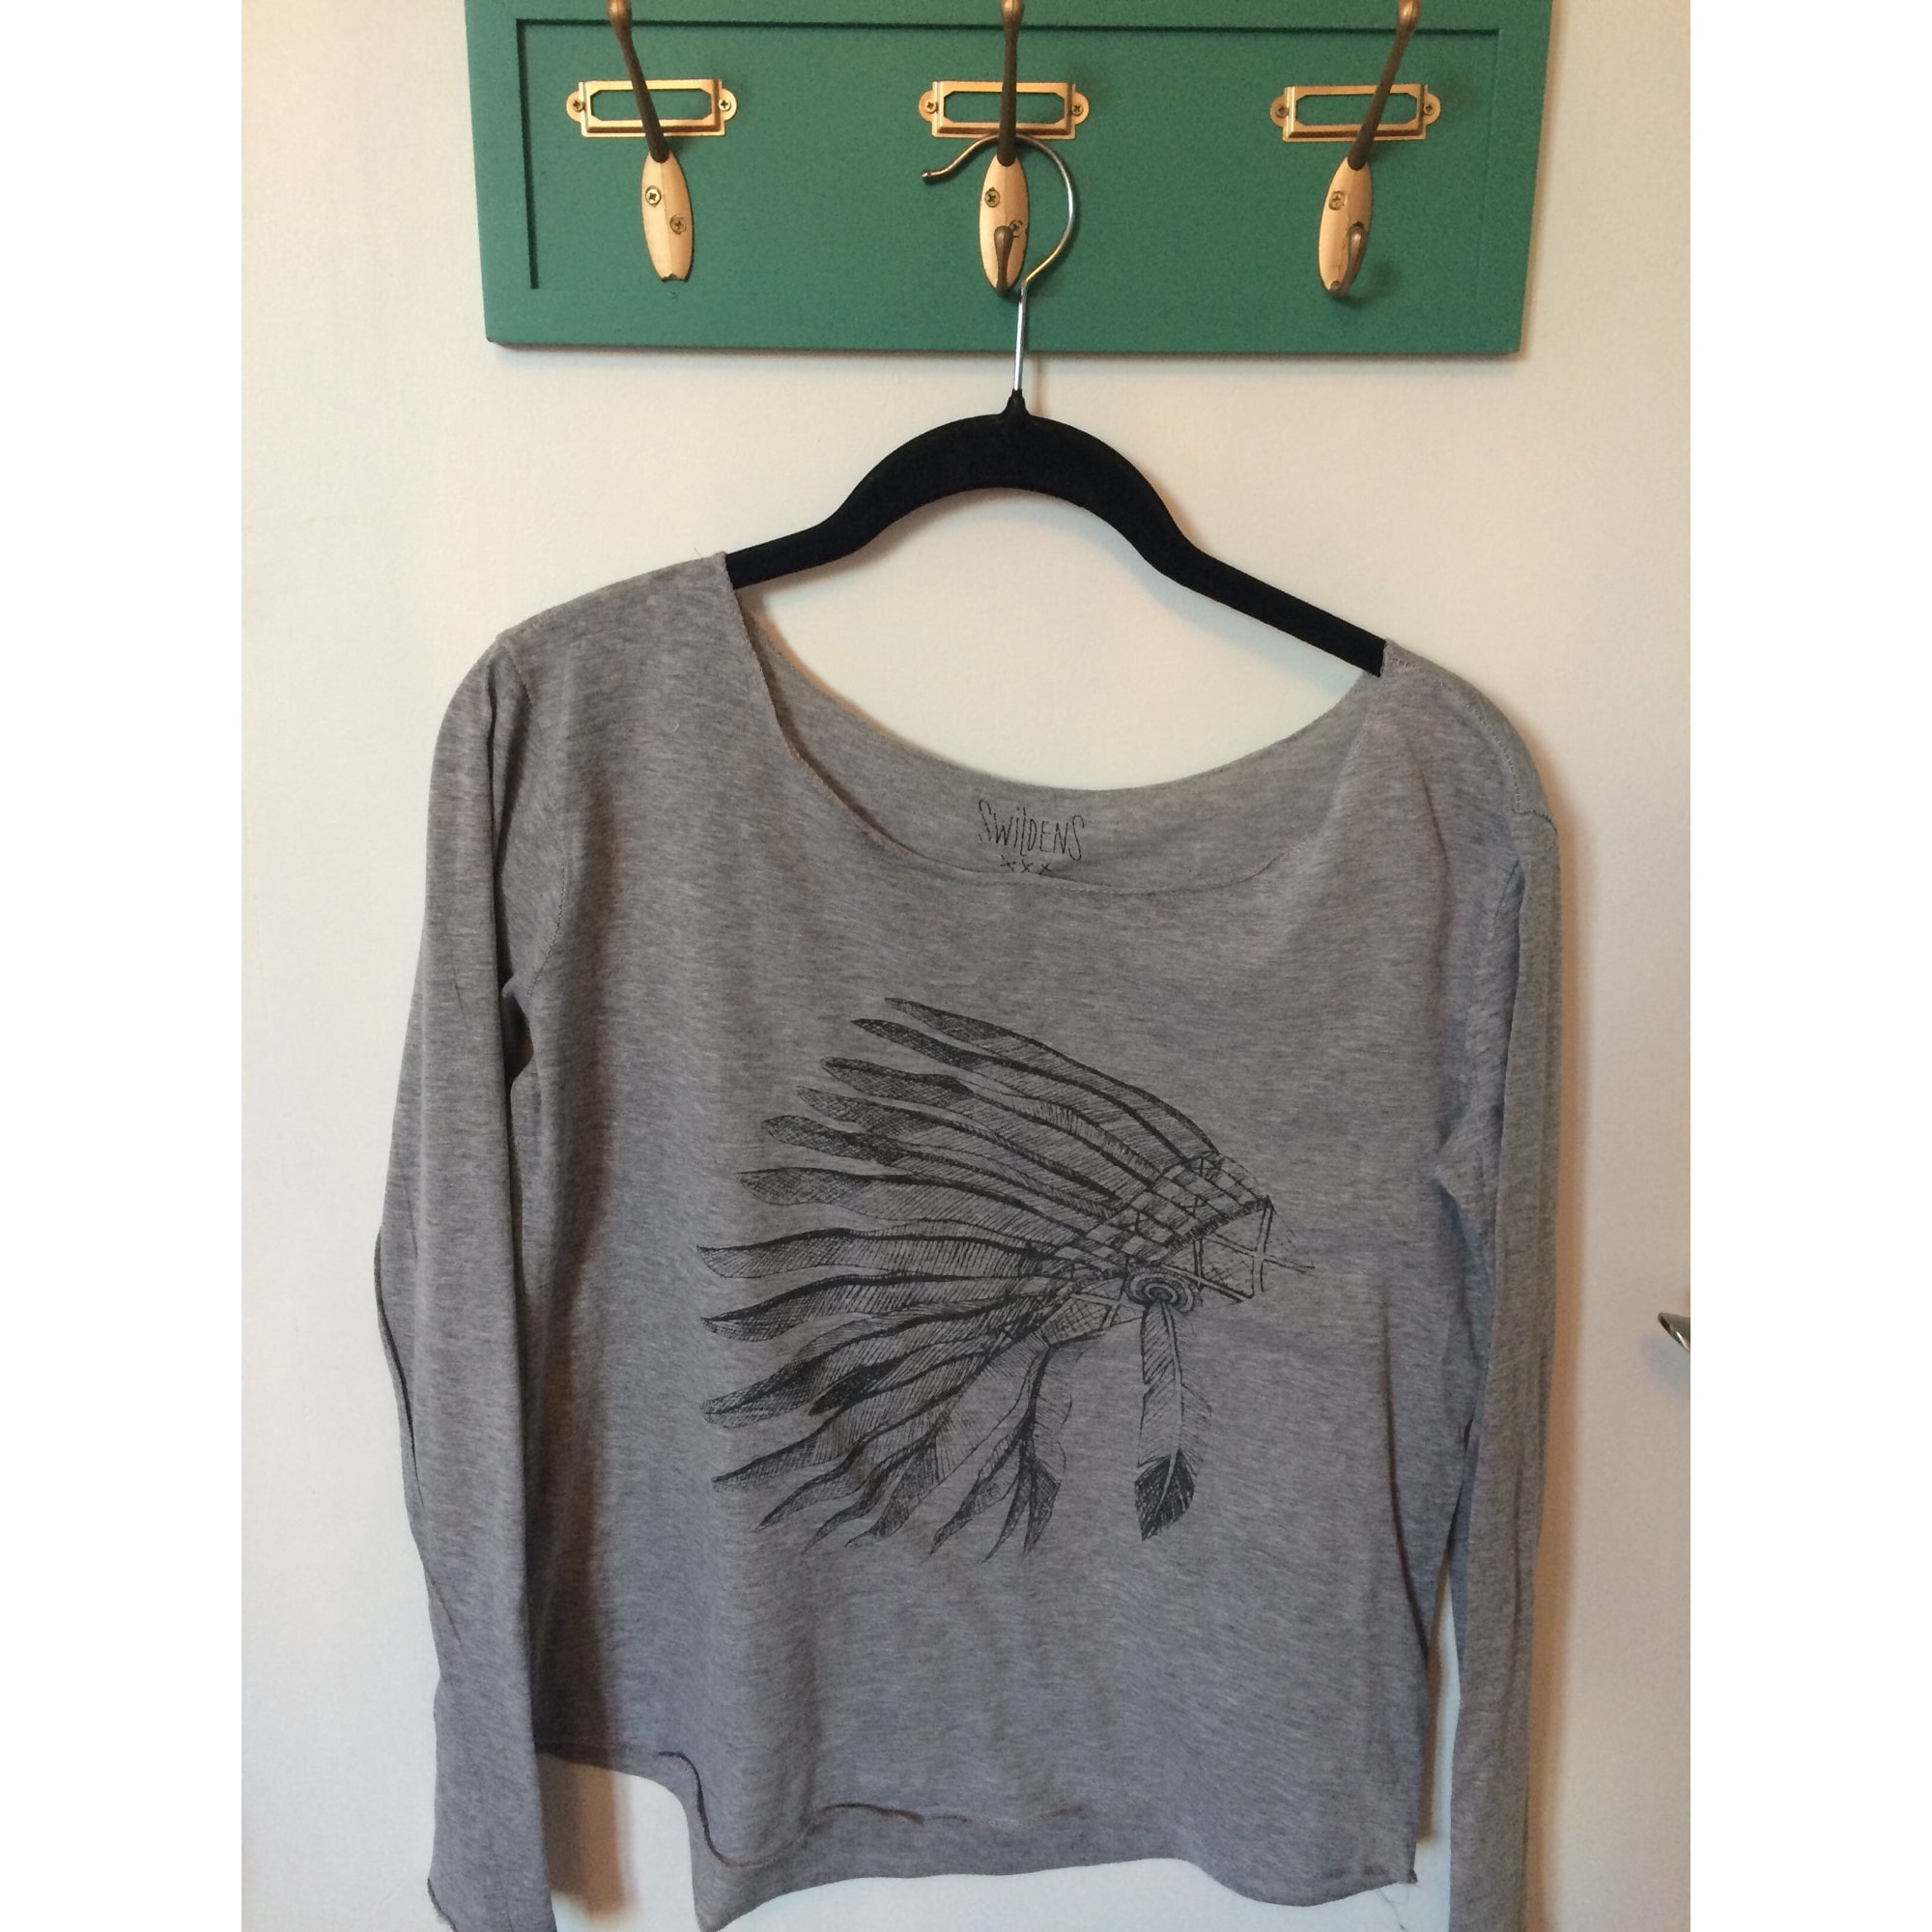 Top, Tee-shirt SWILDENS Gris, anthracite